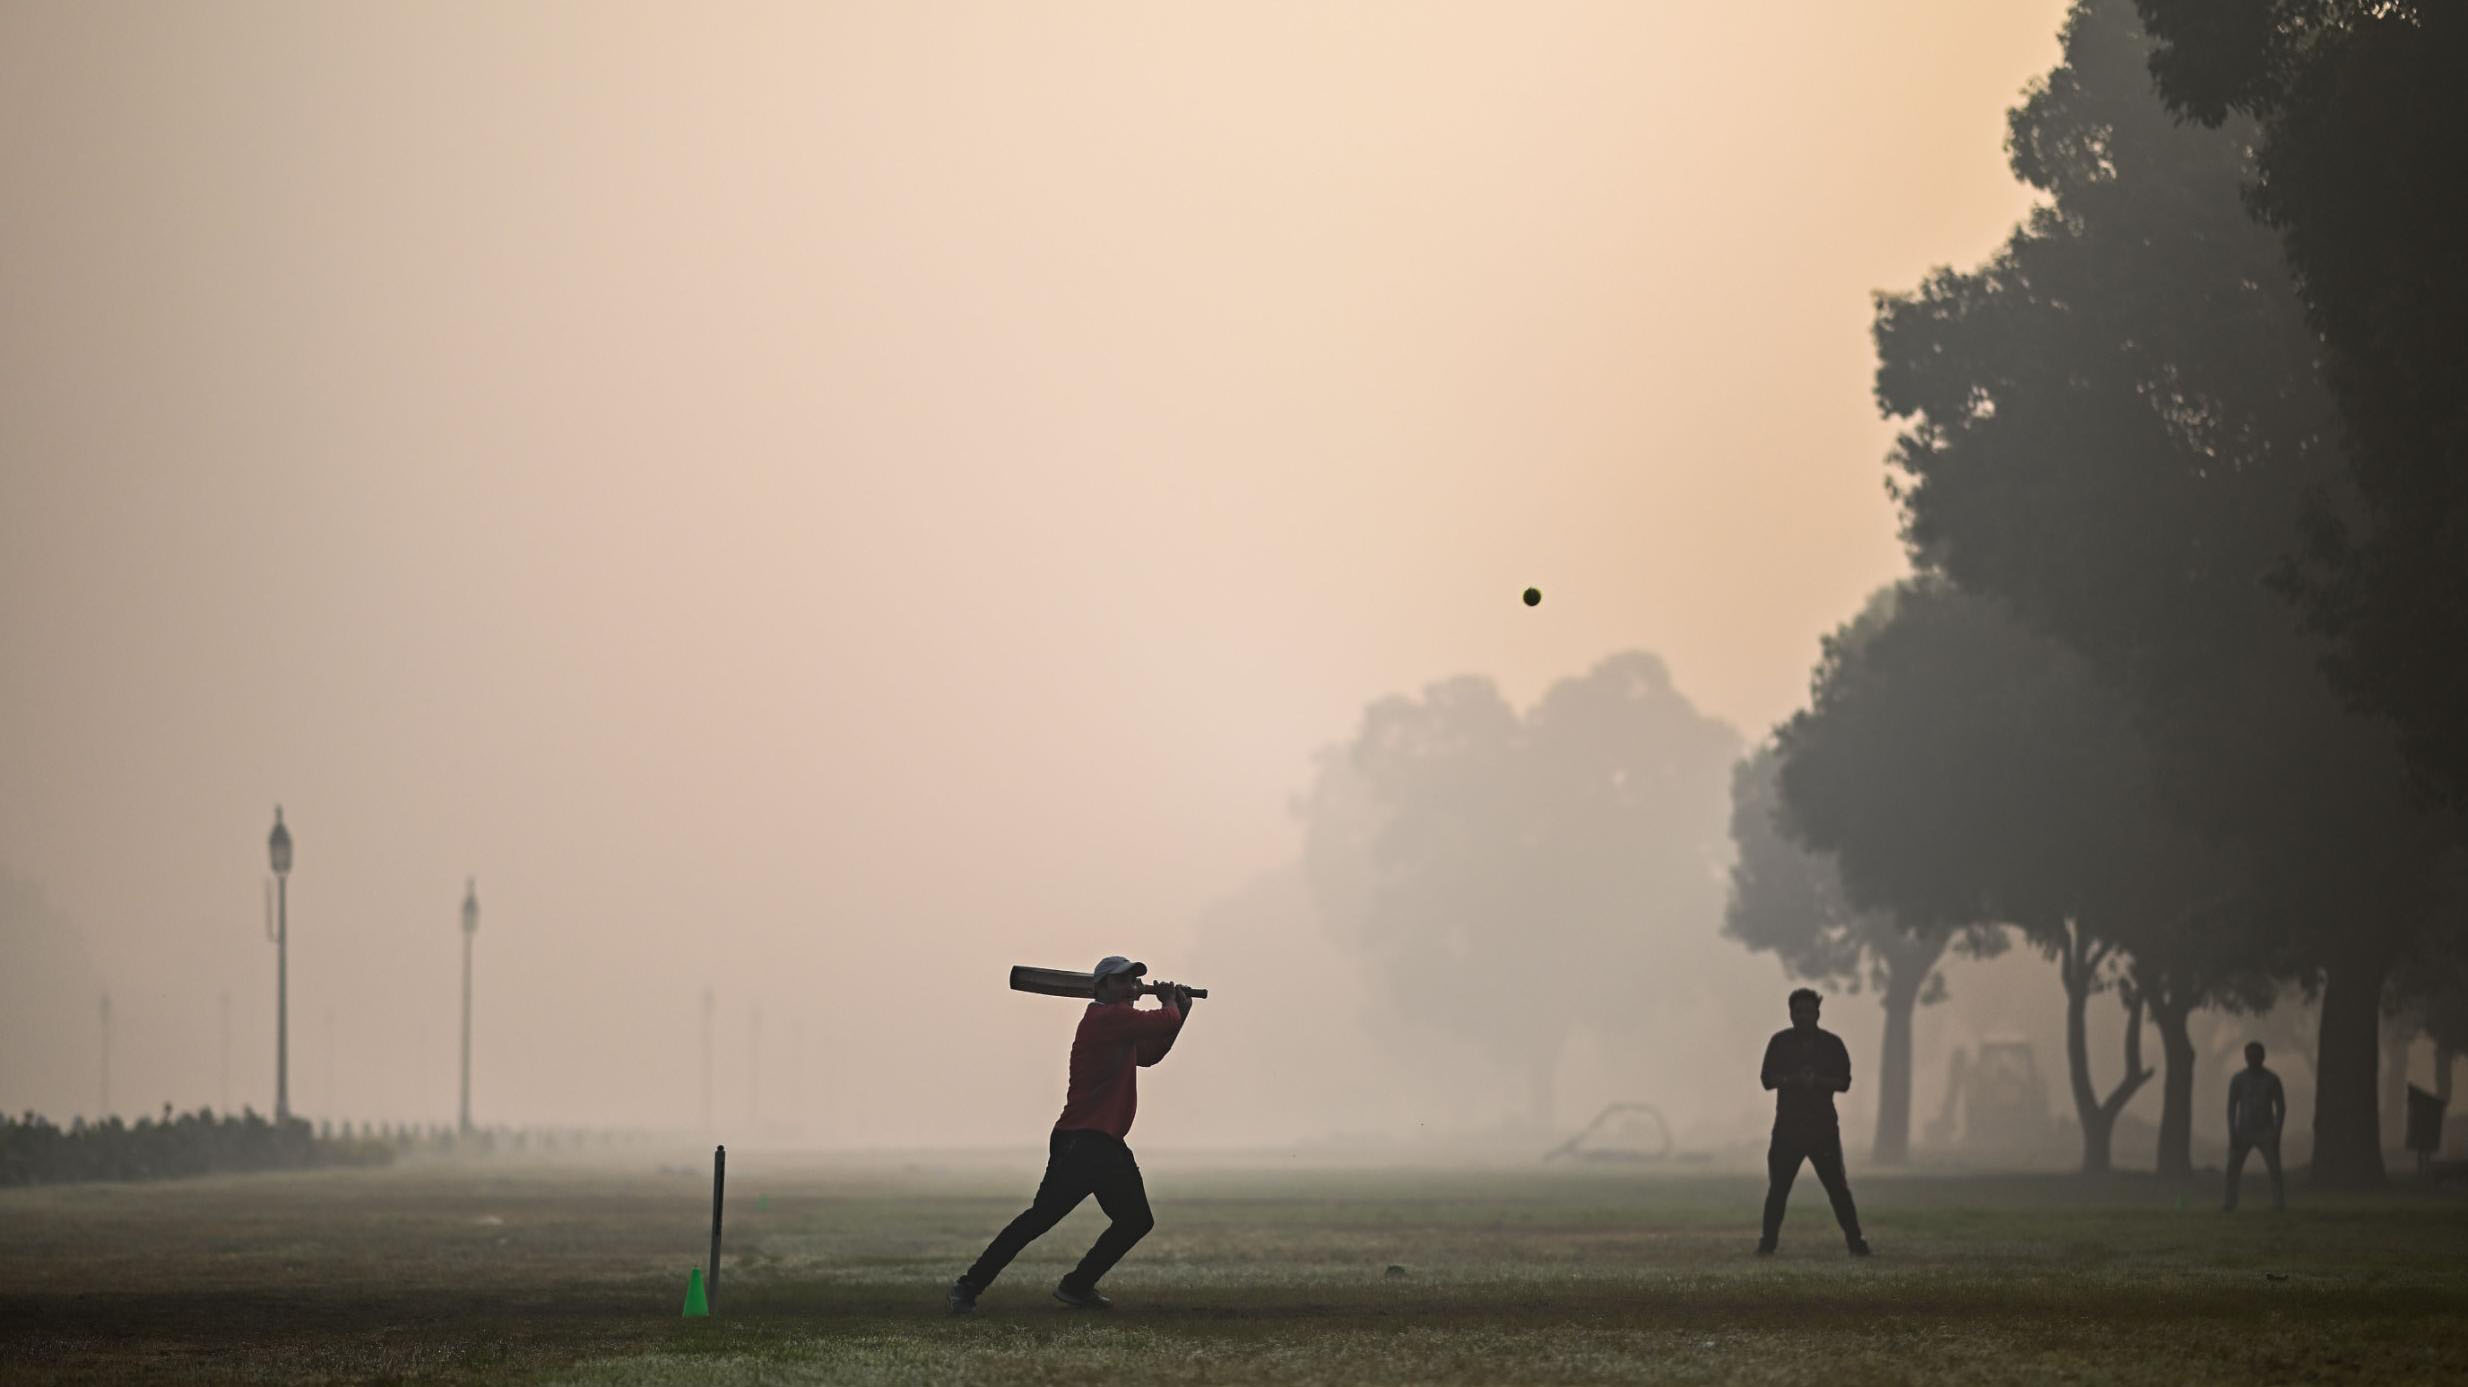 People played cricket at a park in smoky conditions in New Delhi, India.